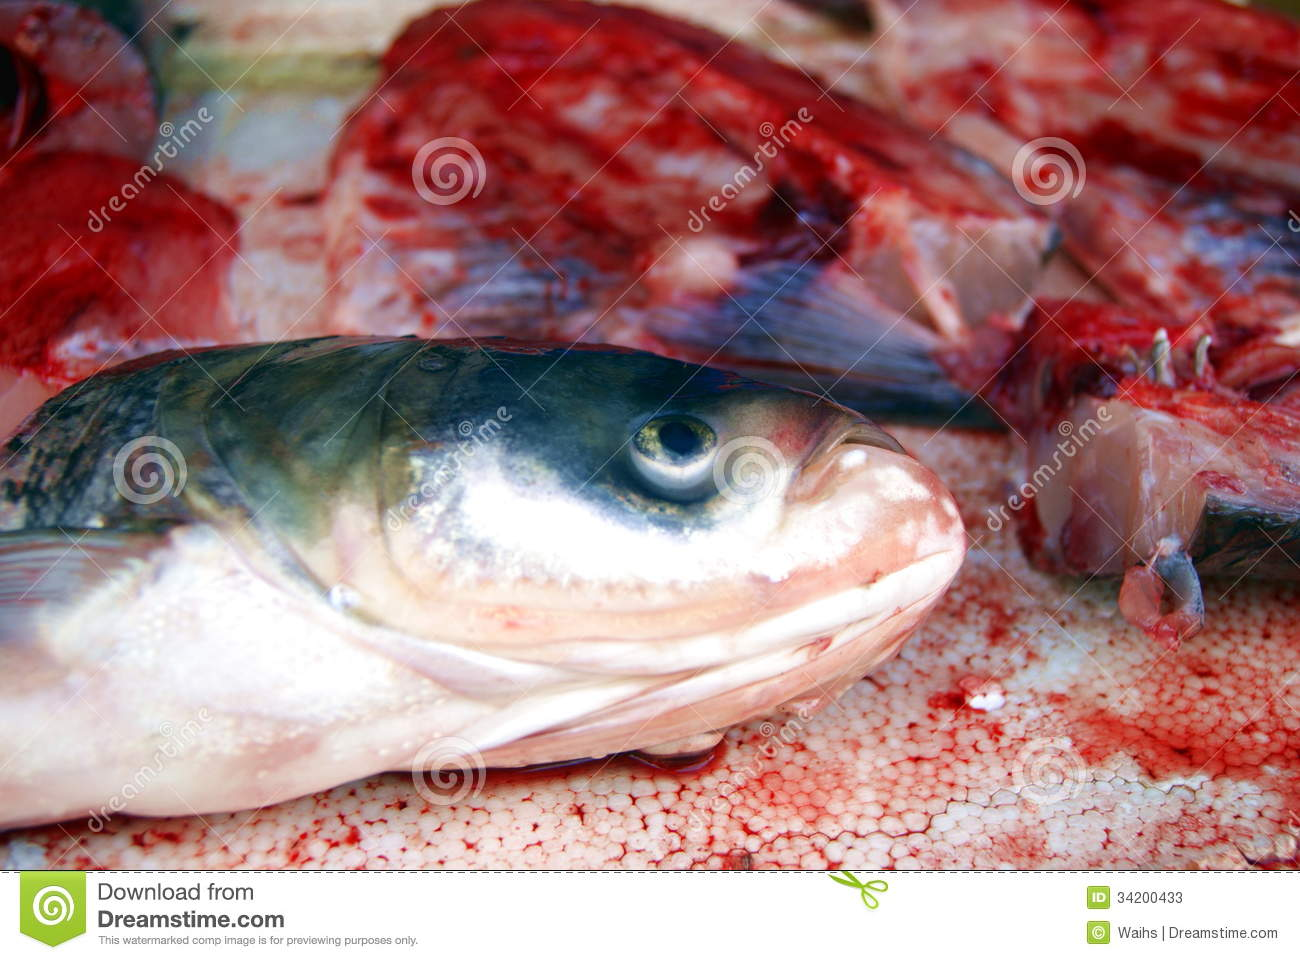 Fish heads and fish meat stock photos image 34200433 for Is fish considered meat